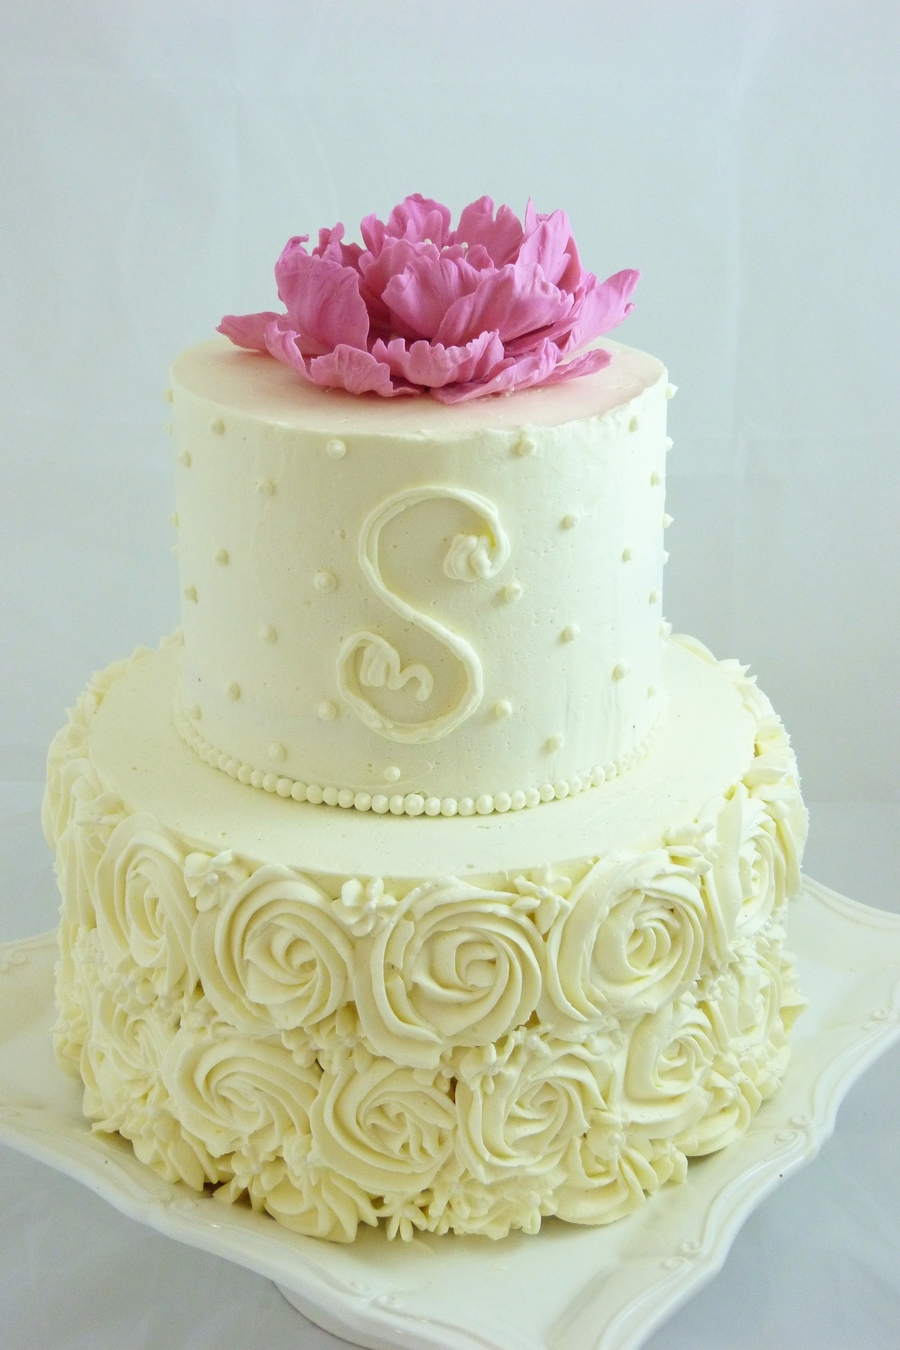 Buttercream decorated small wedding cake with piped roses dots and buttercream decorated small wedding cake with piped roses dots and a monogram handmade gum paste peony on top junglespirit